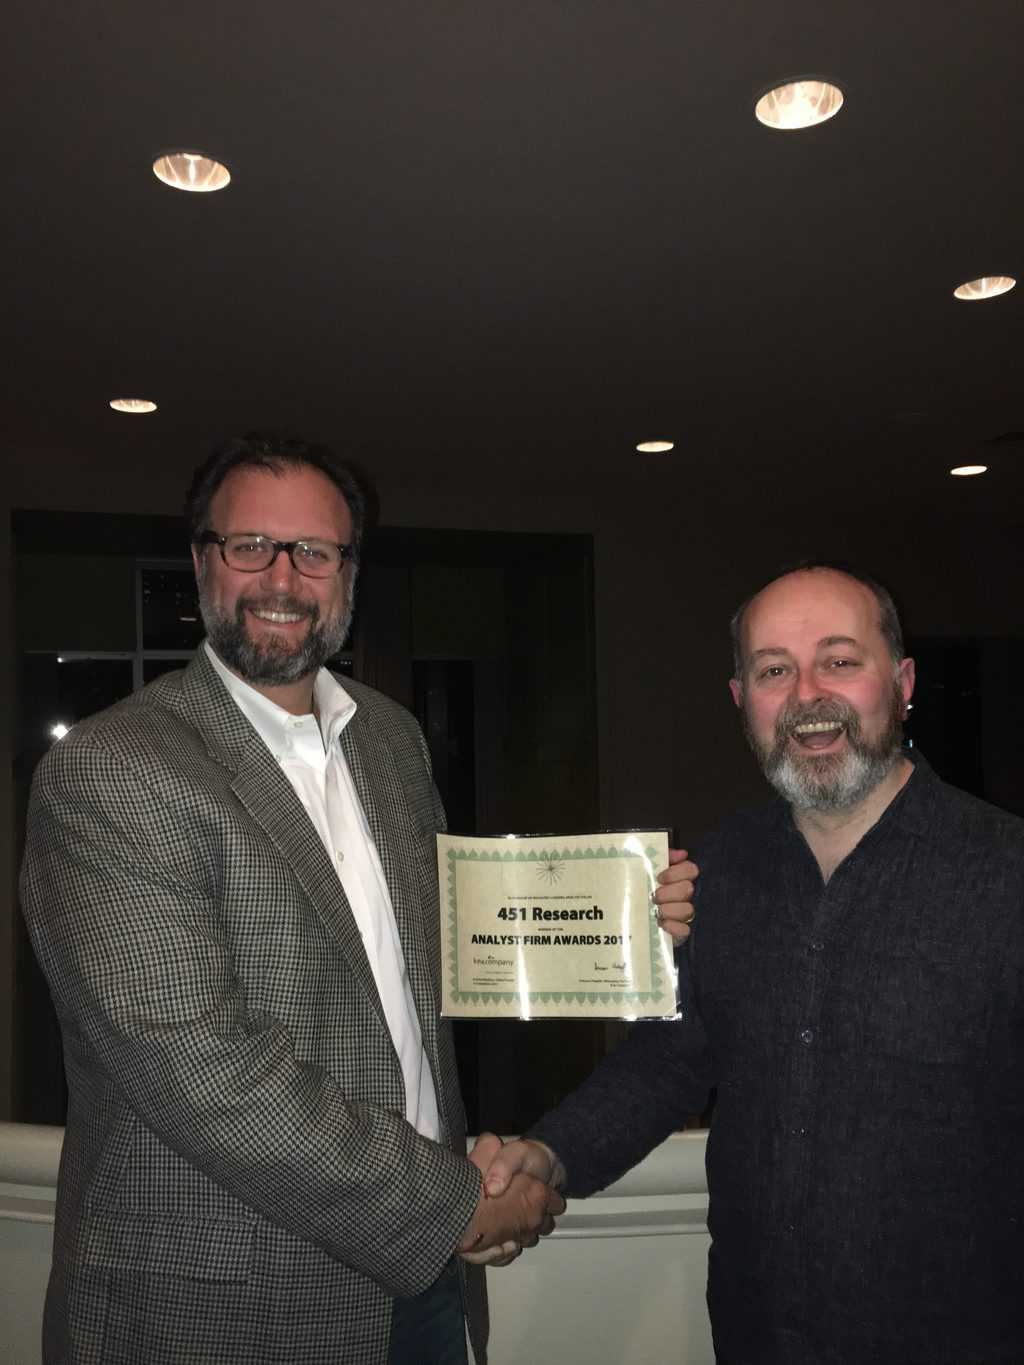 James Stanton accepts 451 Research's Analyst Firm Award from Duncan Chapple